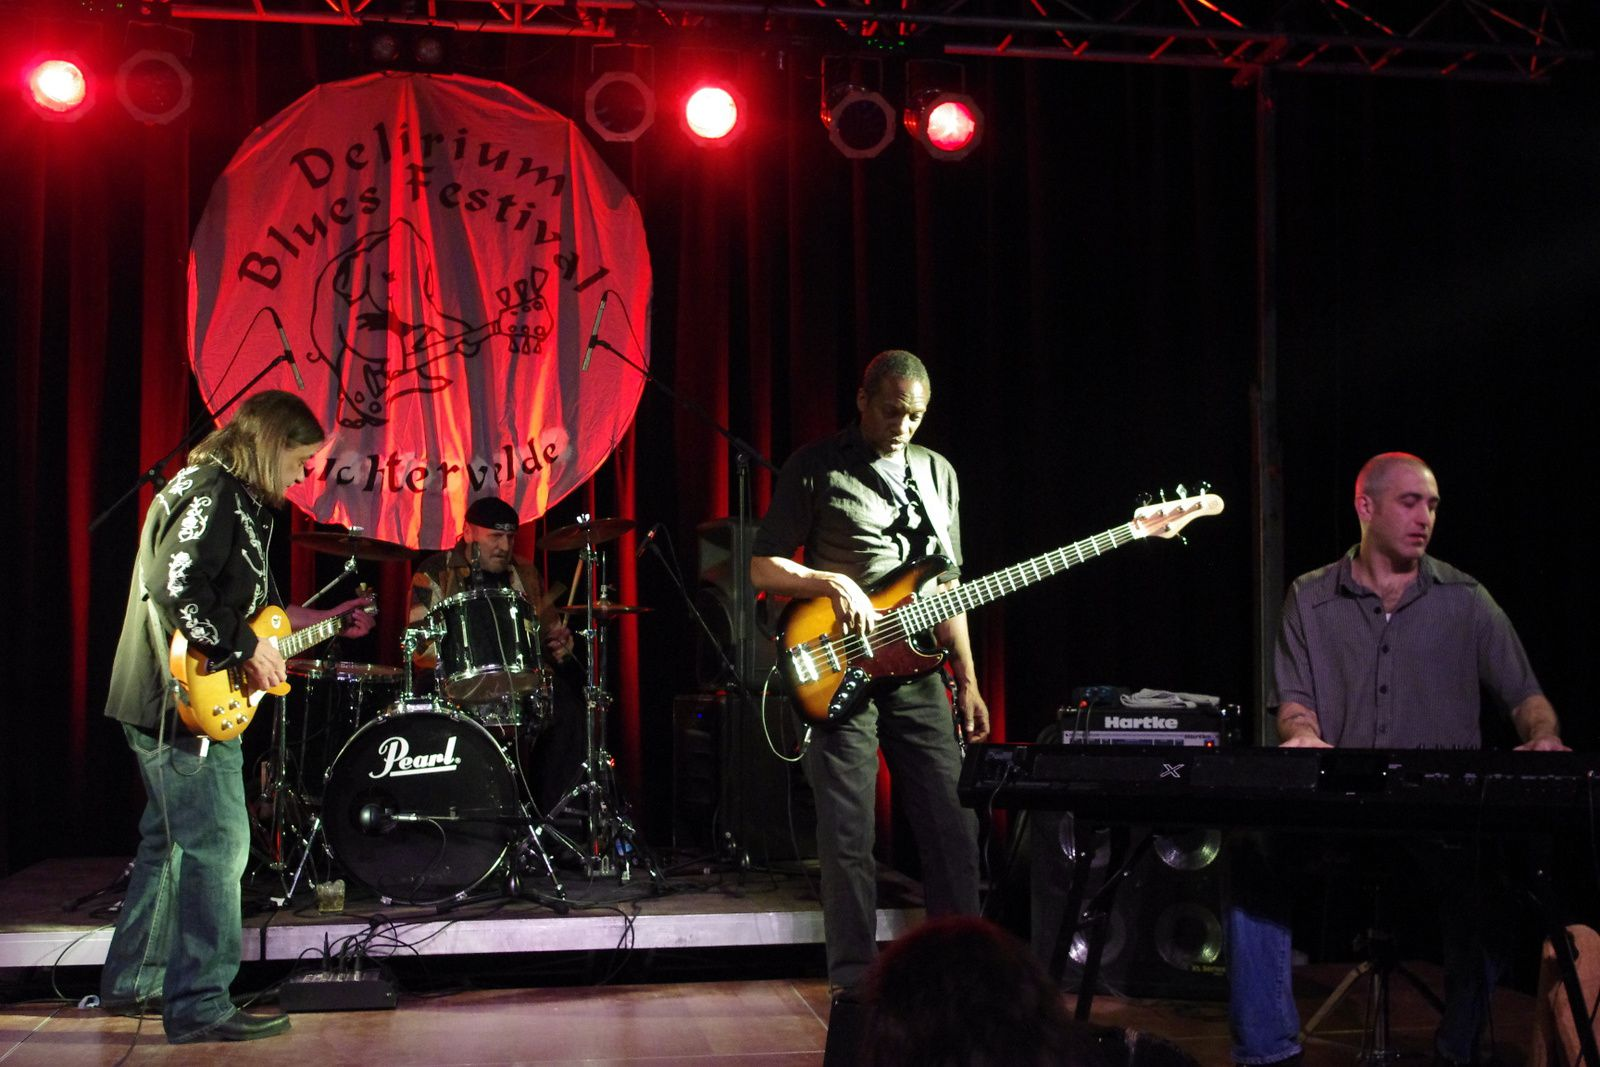 Neal Black & The Healers - 19 avril 2014 - Delirium Blues festival, Lichtervelde (B)